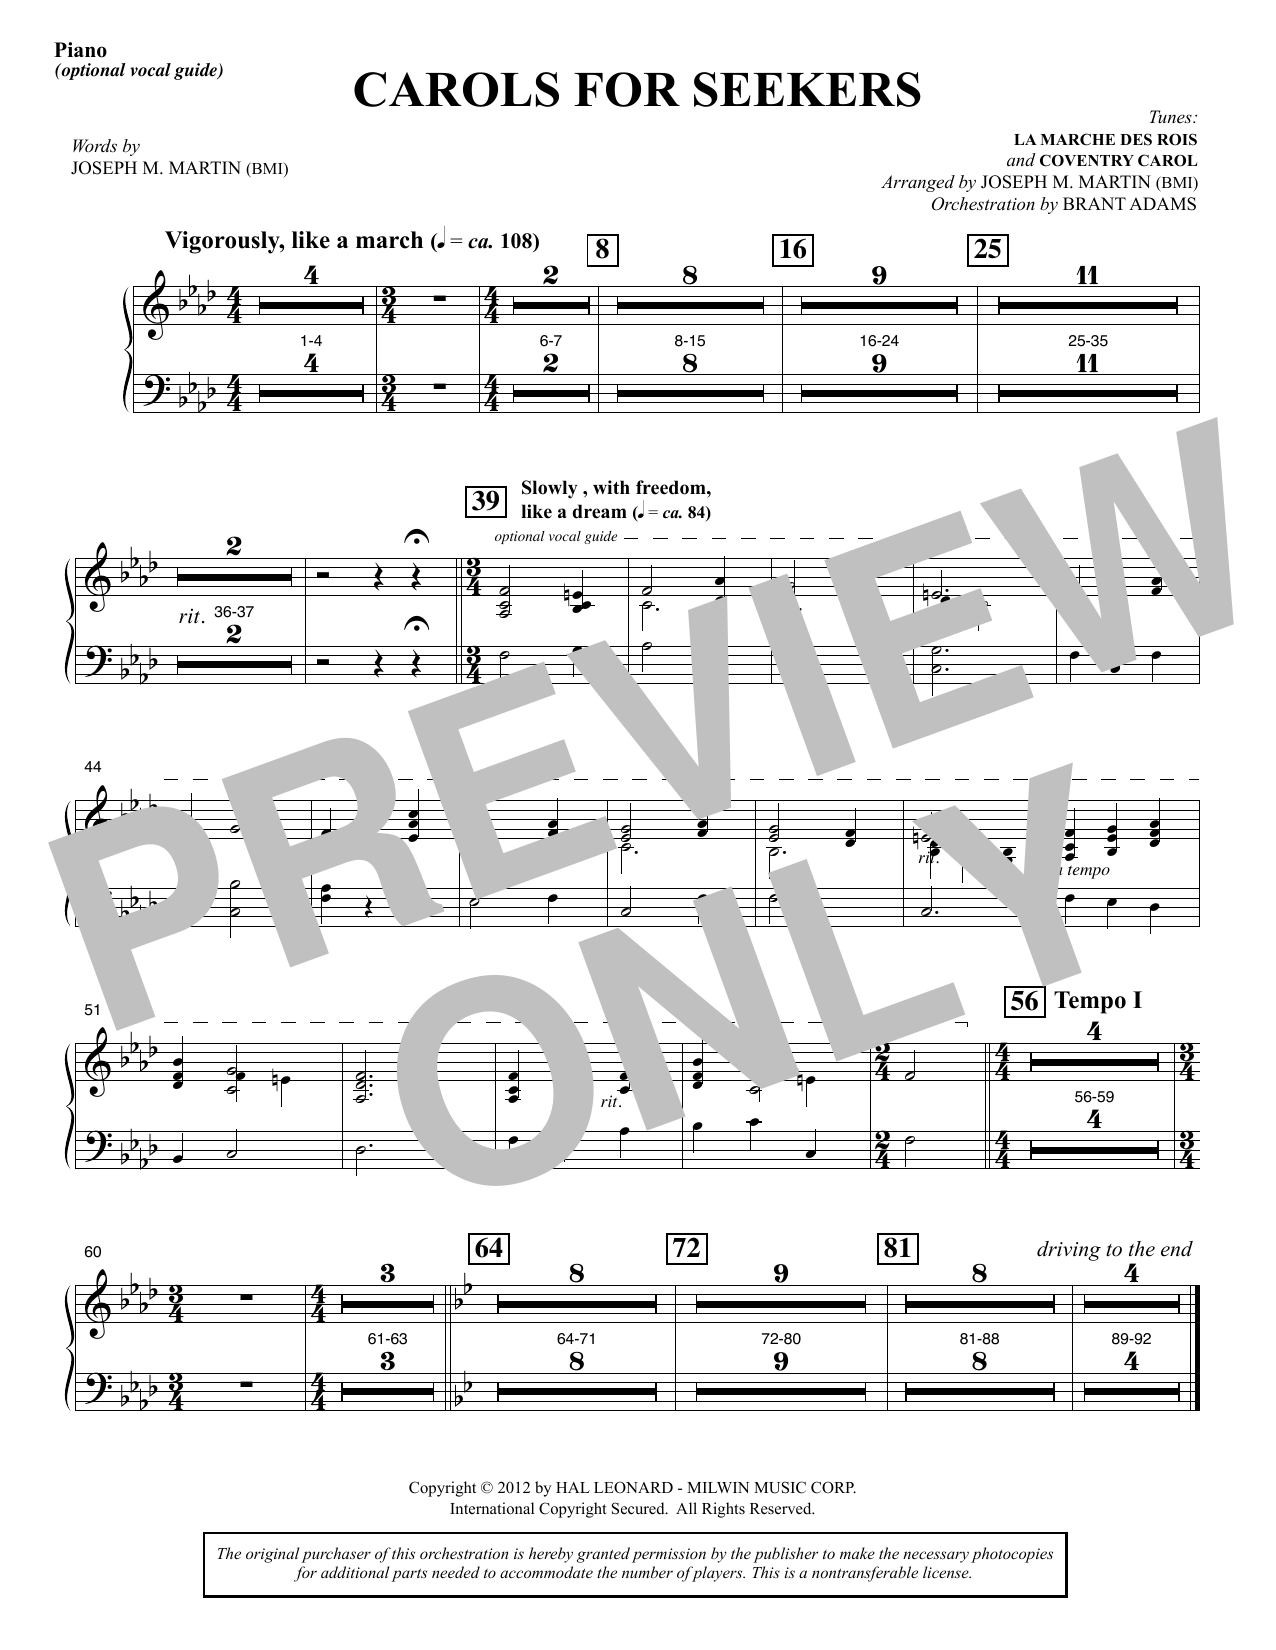 Joseph M. Martin Carols for Seekers - Piano sheet music notes and chords. Download Printable PDF.